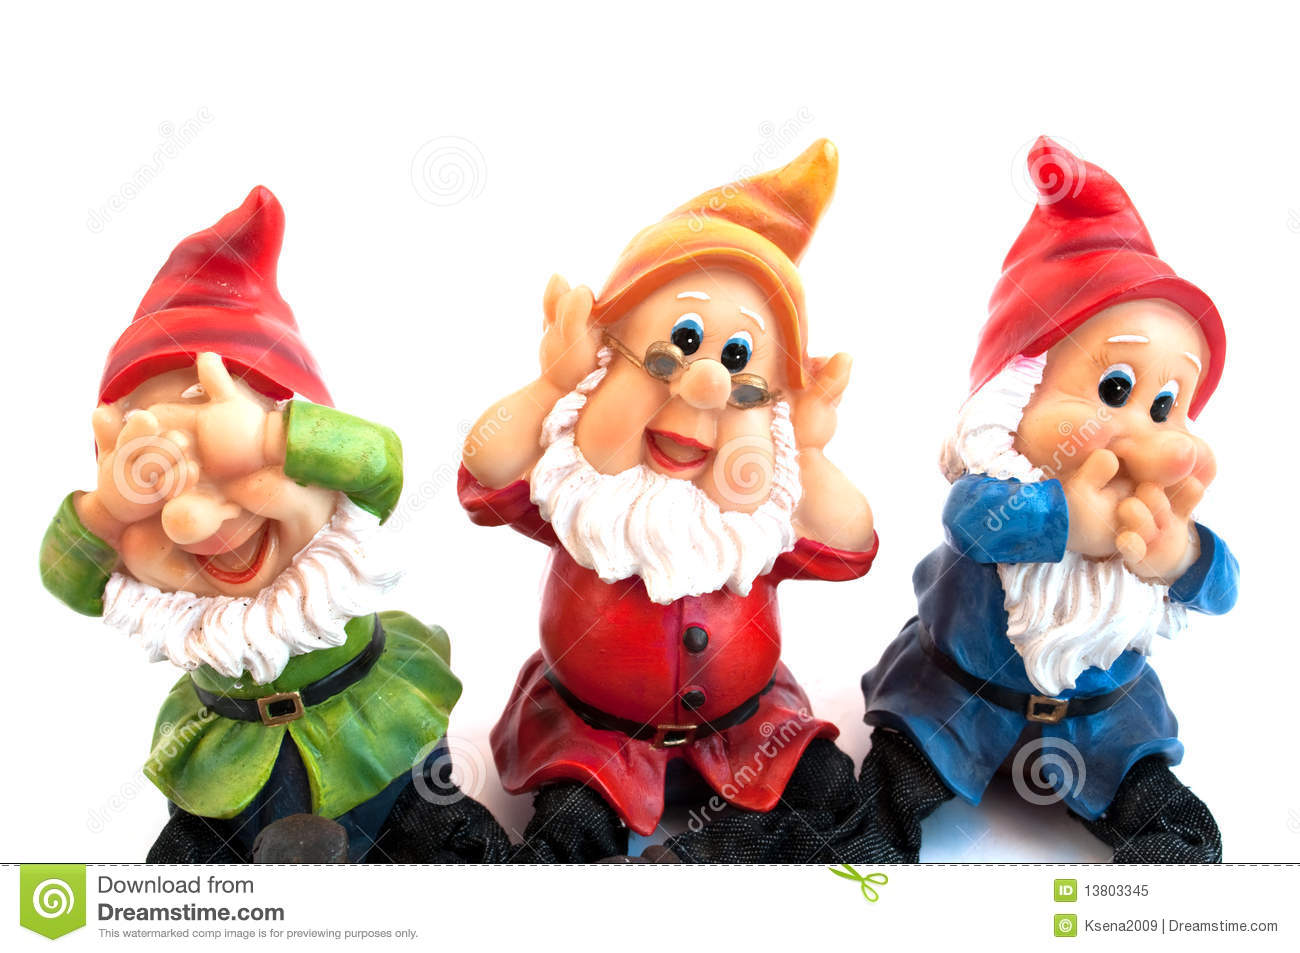 Things That Make You Go Hmmm: The Underpants Gnomes